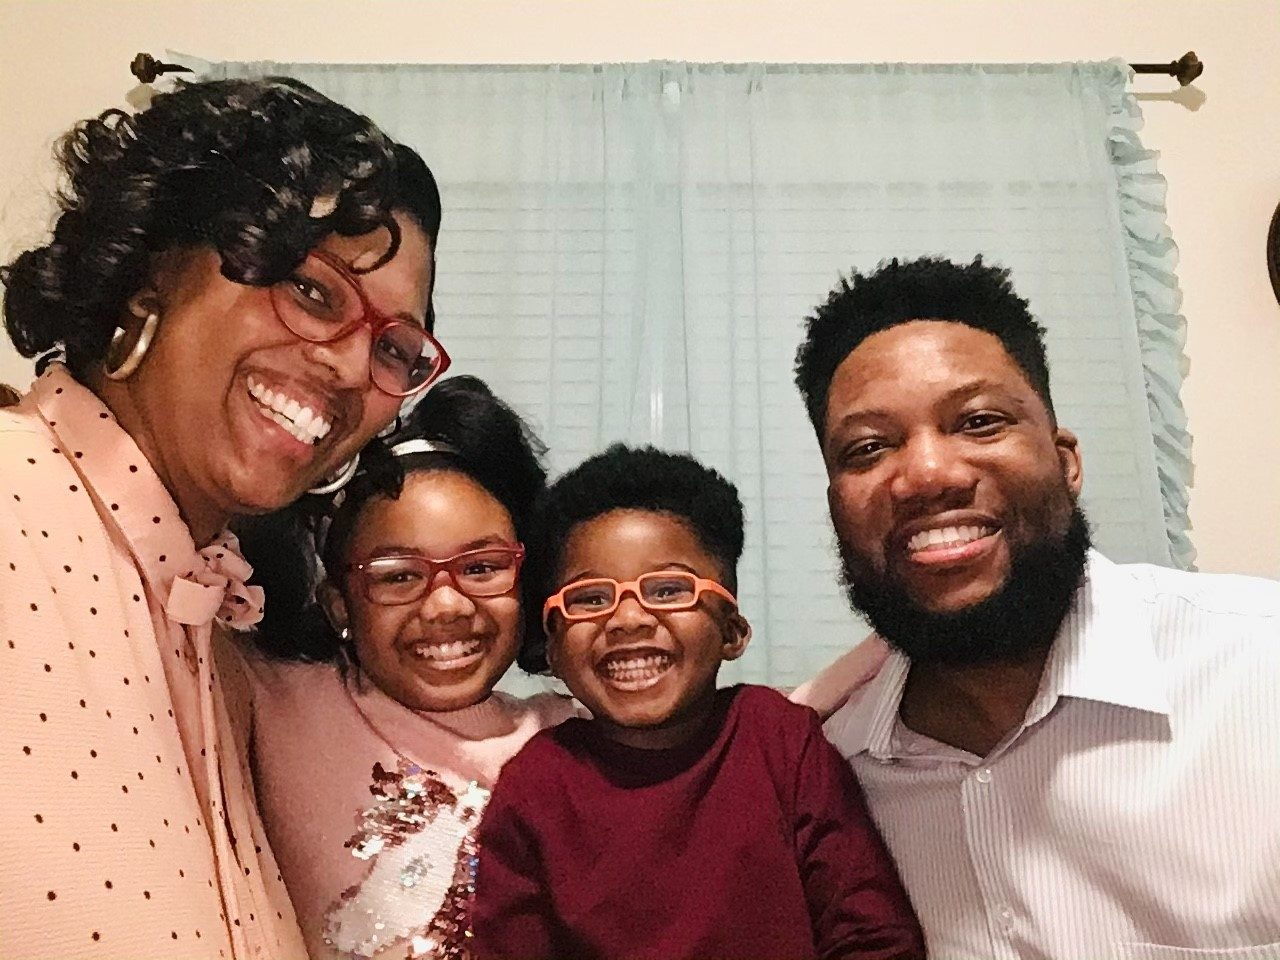 Colorectal cancer survivor Al Thomas with his wife, Demetria, and their kids